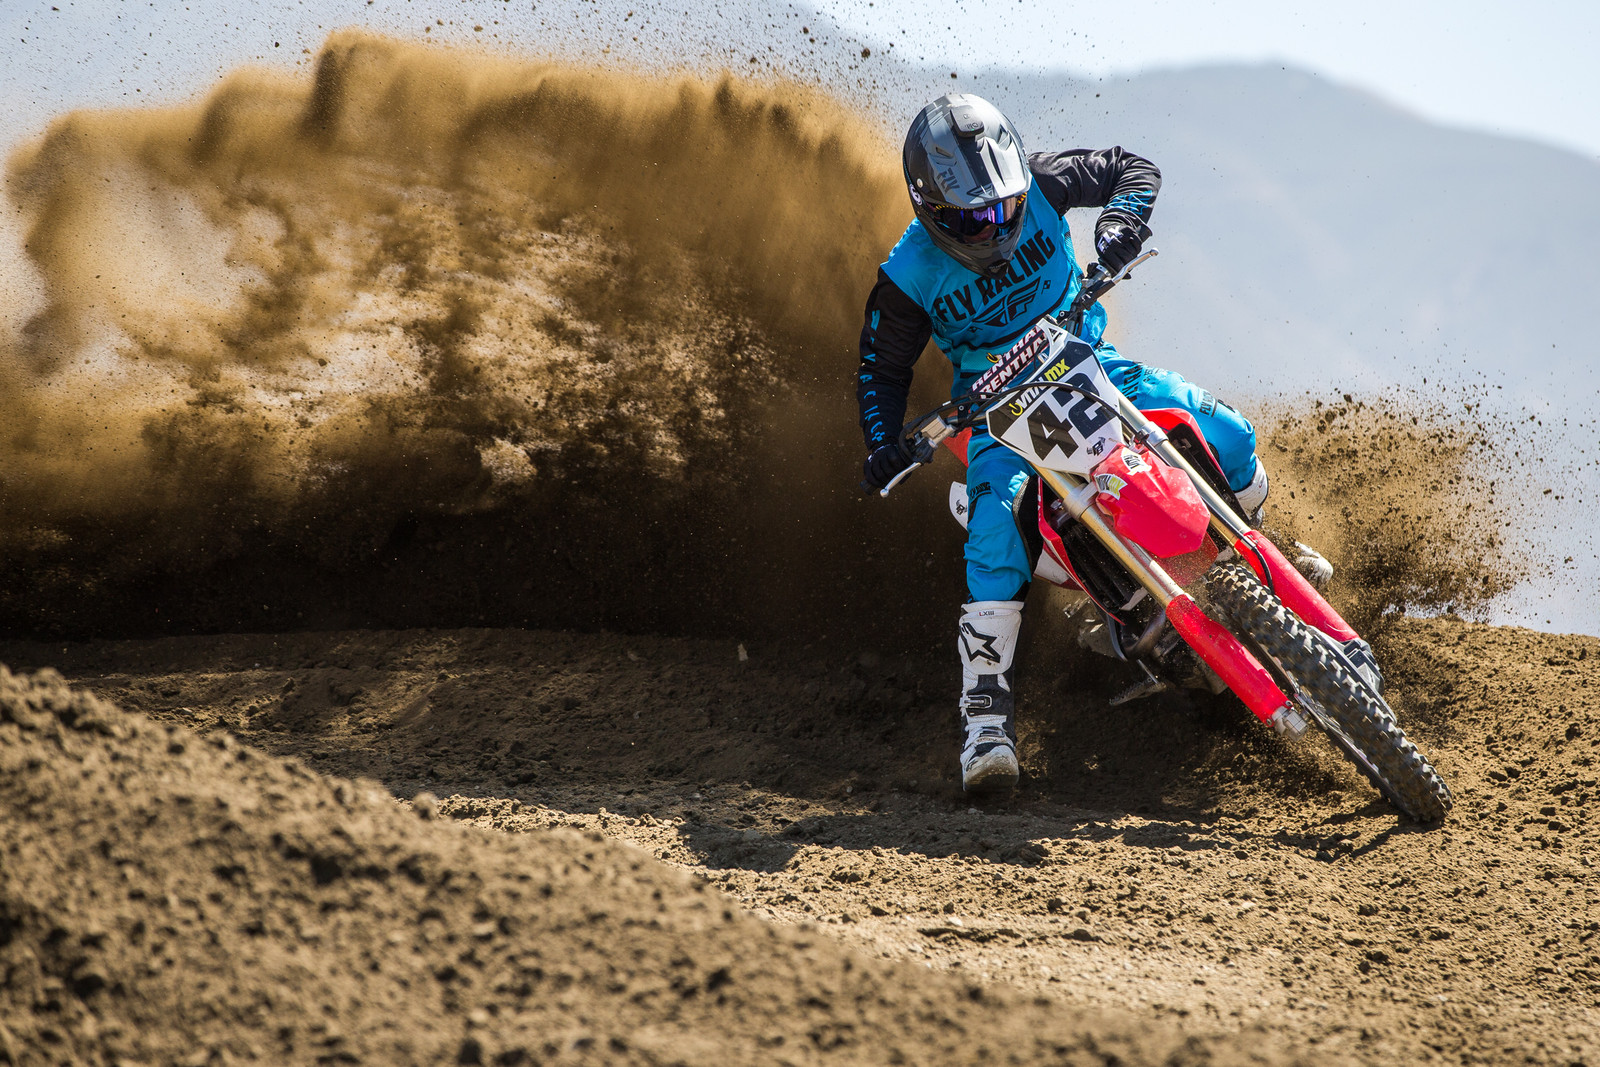 2018 Vital Mx 450 Shootout Motocross Feature Stories Crf Wiring Diagram I Felt Like Could Pick Up The Front End With A Blip Of Throttle And Let It Set Down In Rough Chop Off Camber Braking Bumps Or Into Rut Without